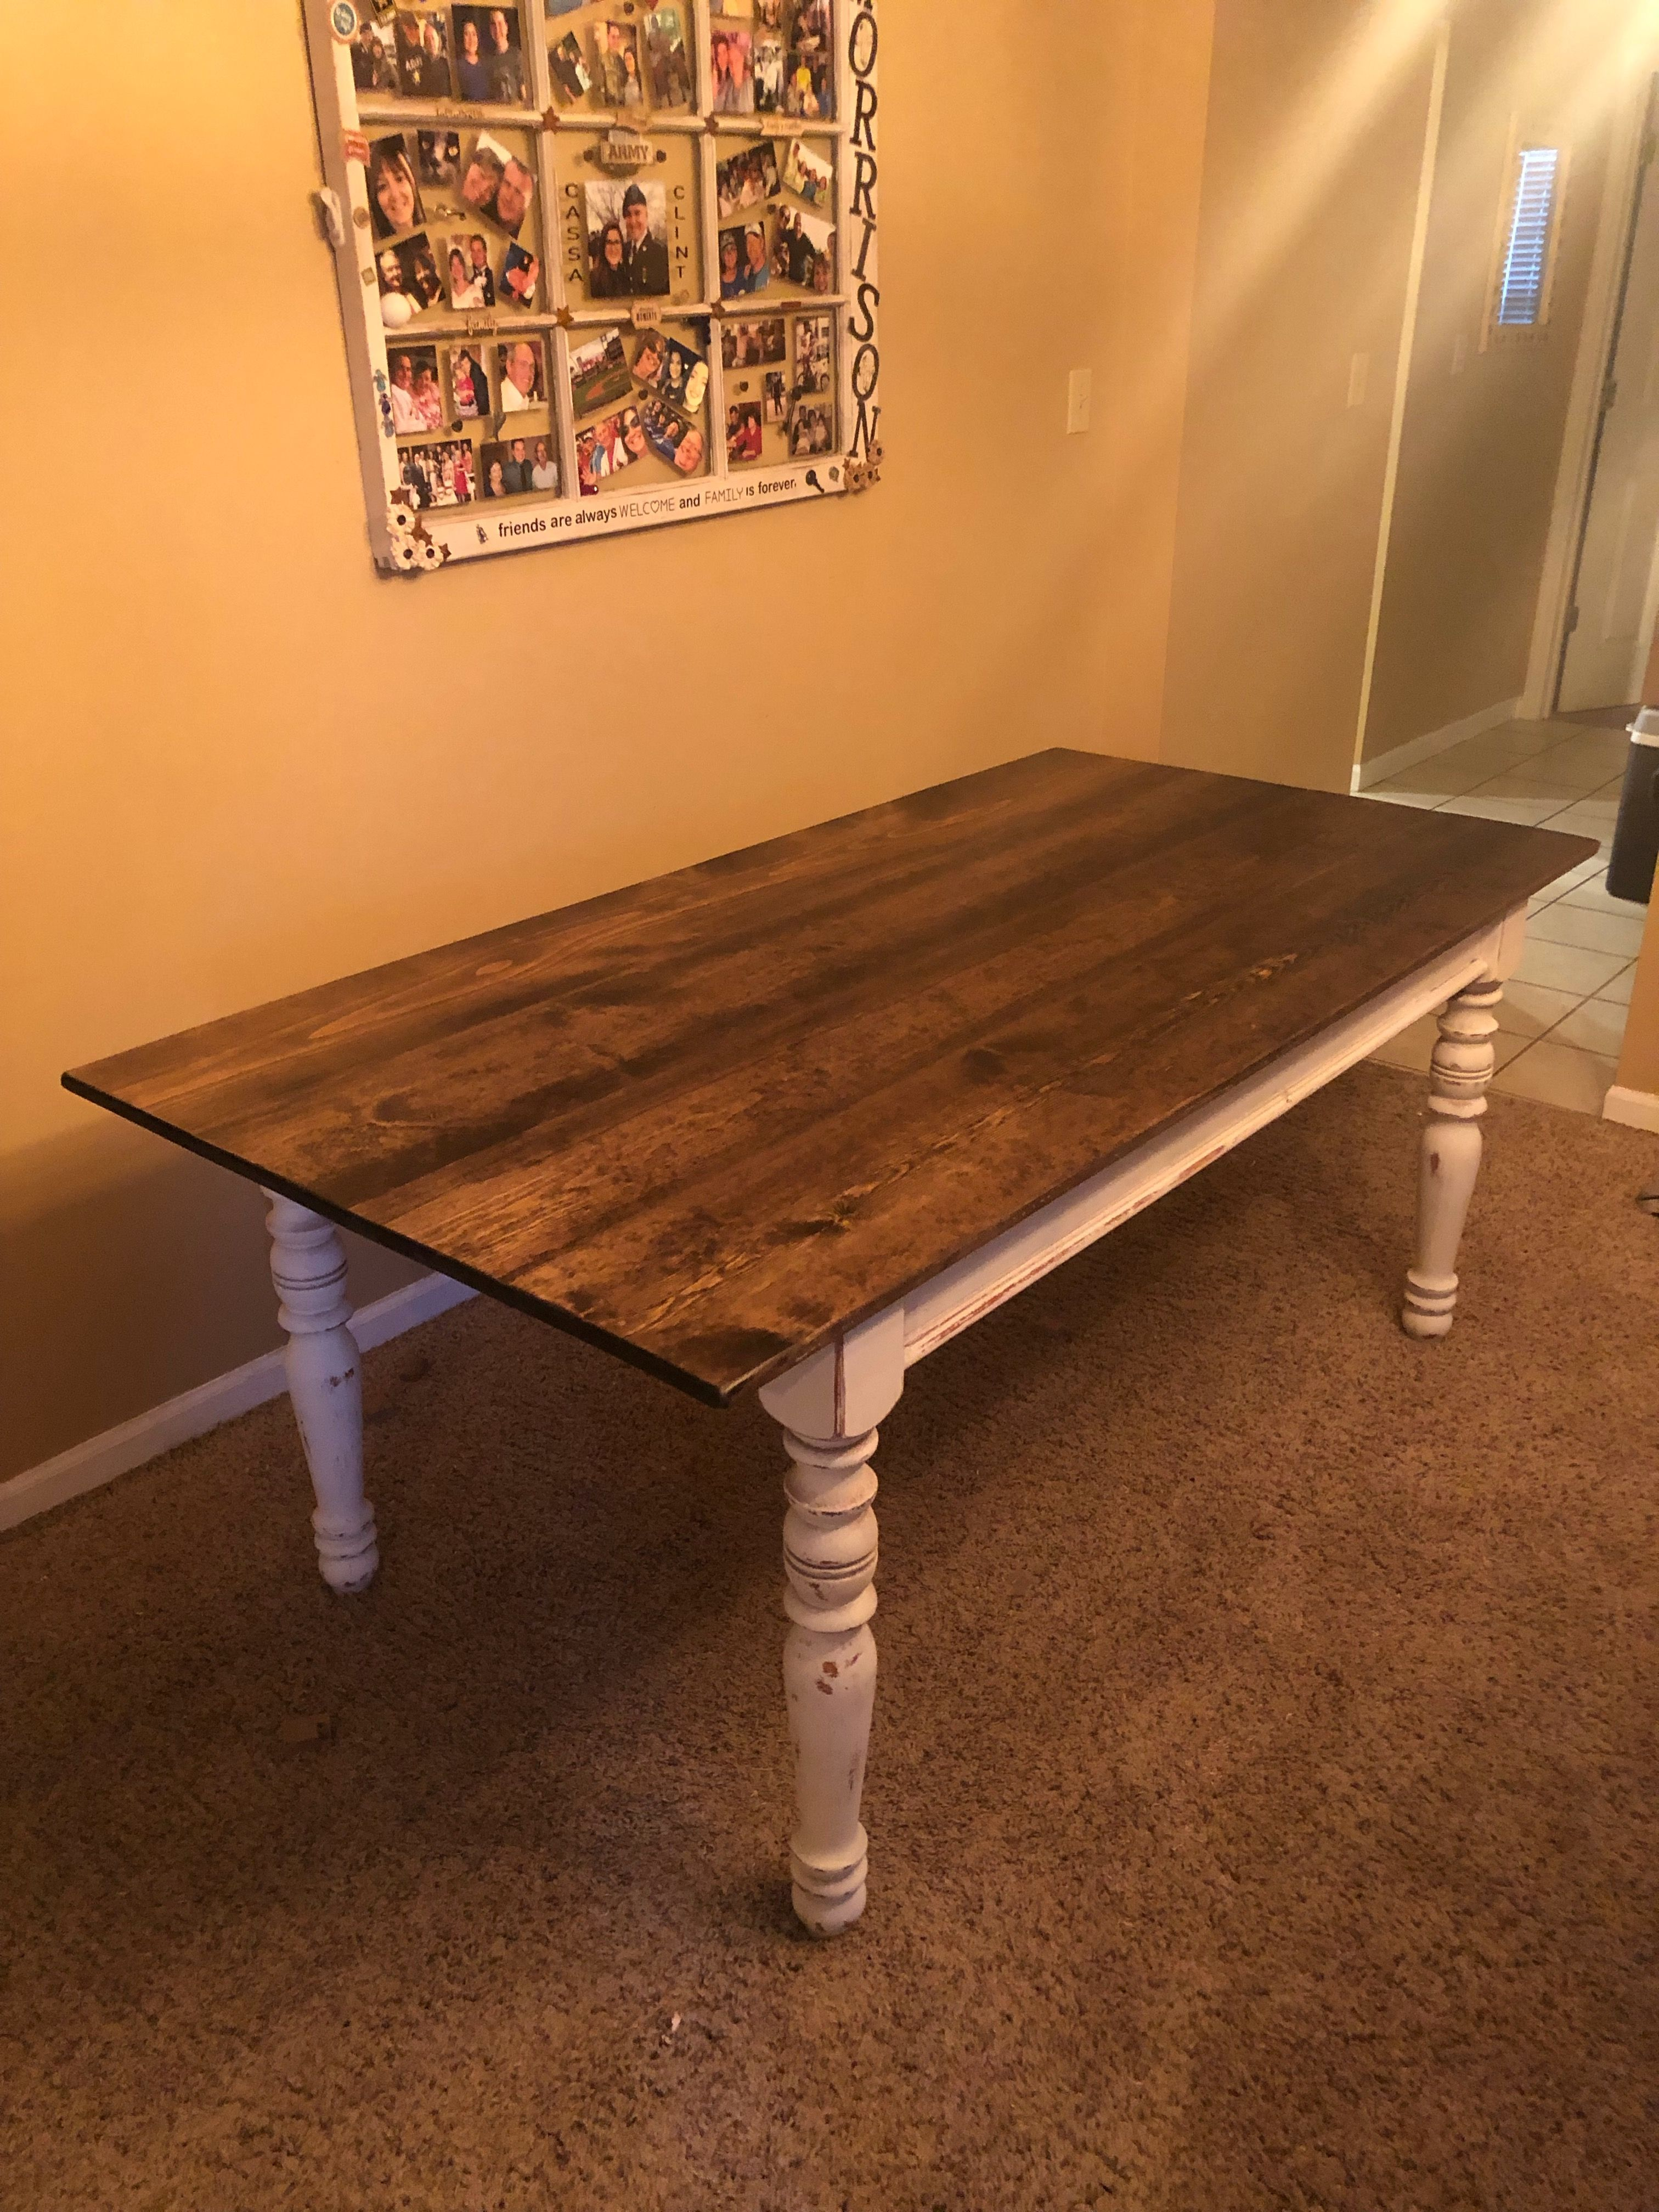 7 Foot Farm Table For Second Hand Chic Table Dining Table Decor